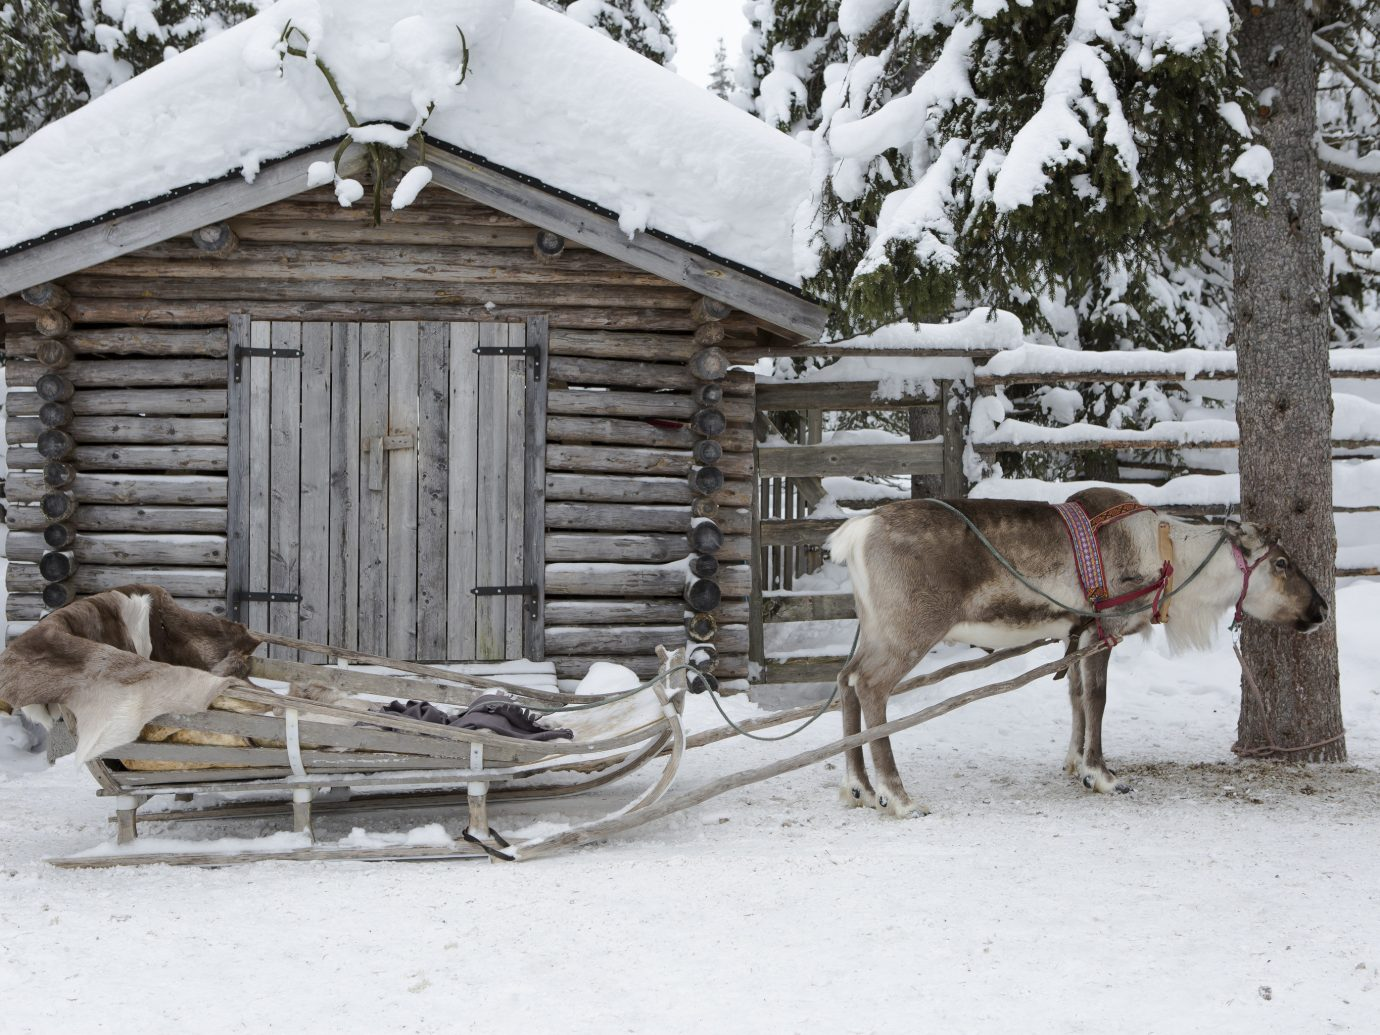 Adventure outdoor tree snow Winter reindeer log cabin house hut deer home wood sugar house freezing shed farm building